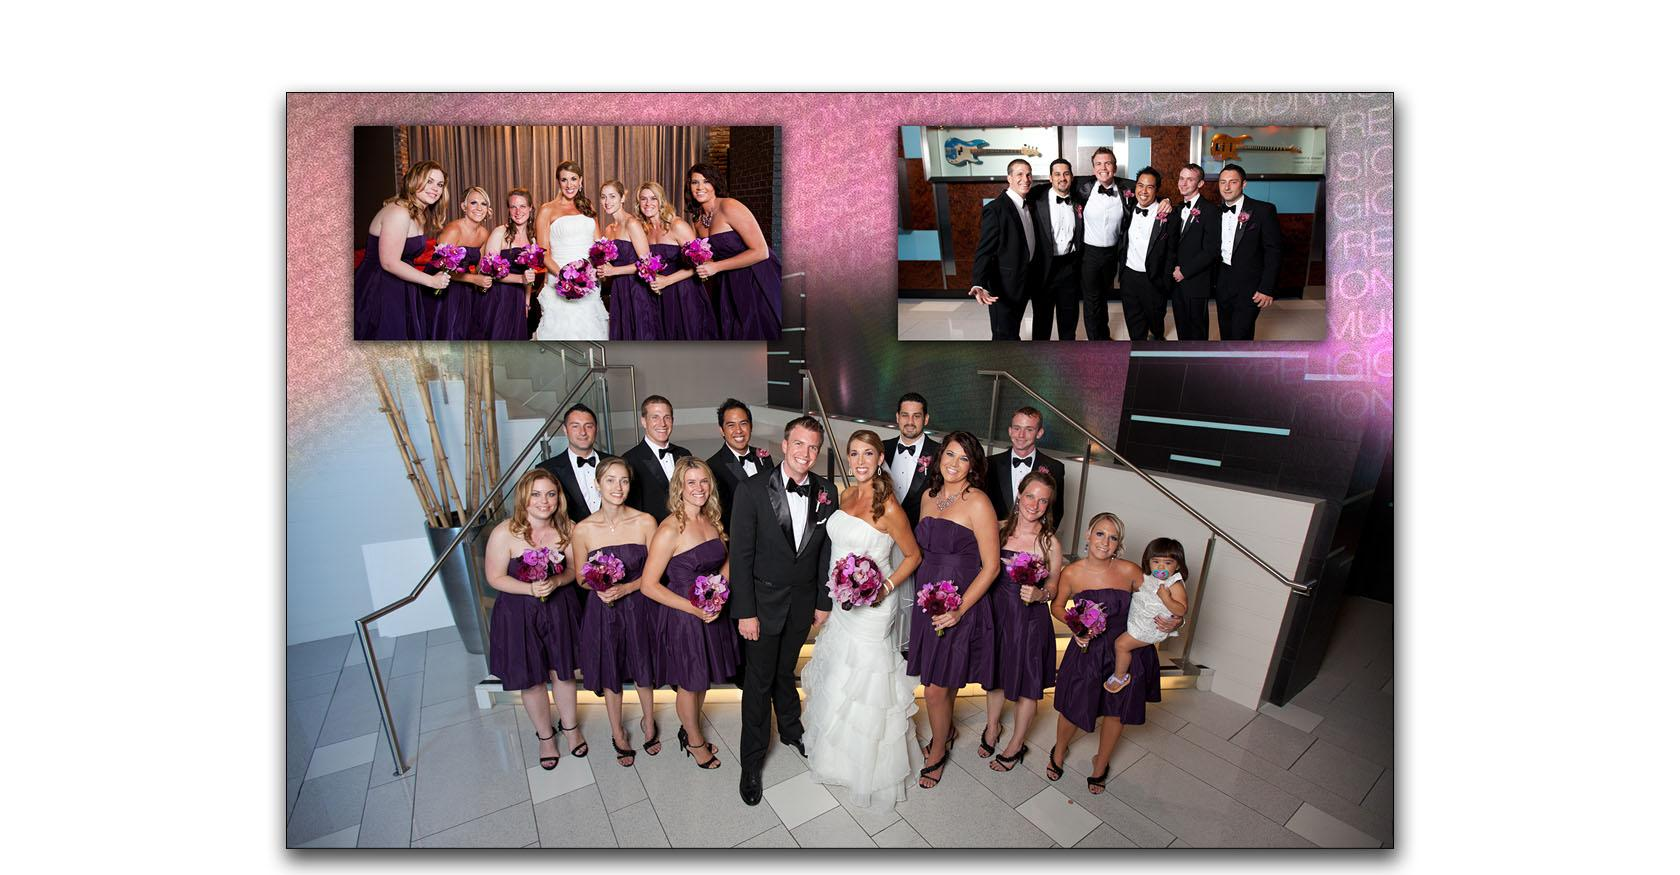 San Diego Hard Rock wedding photo album 04